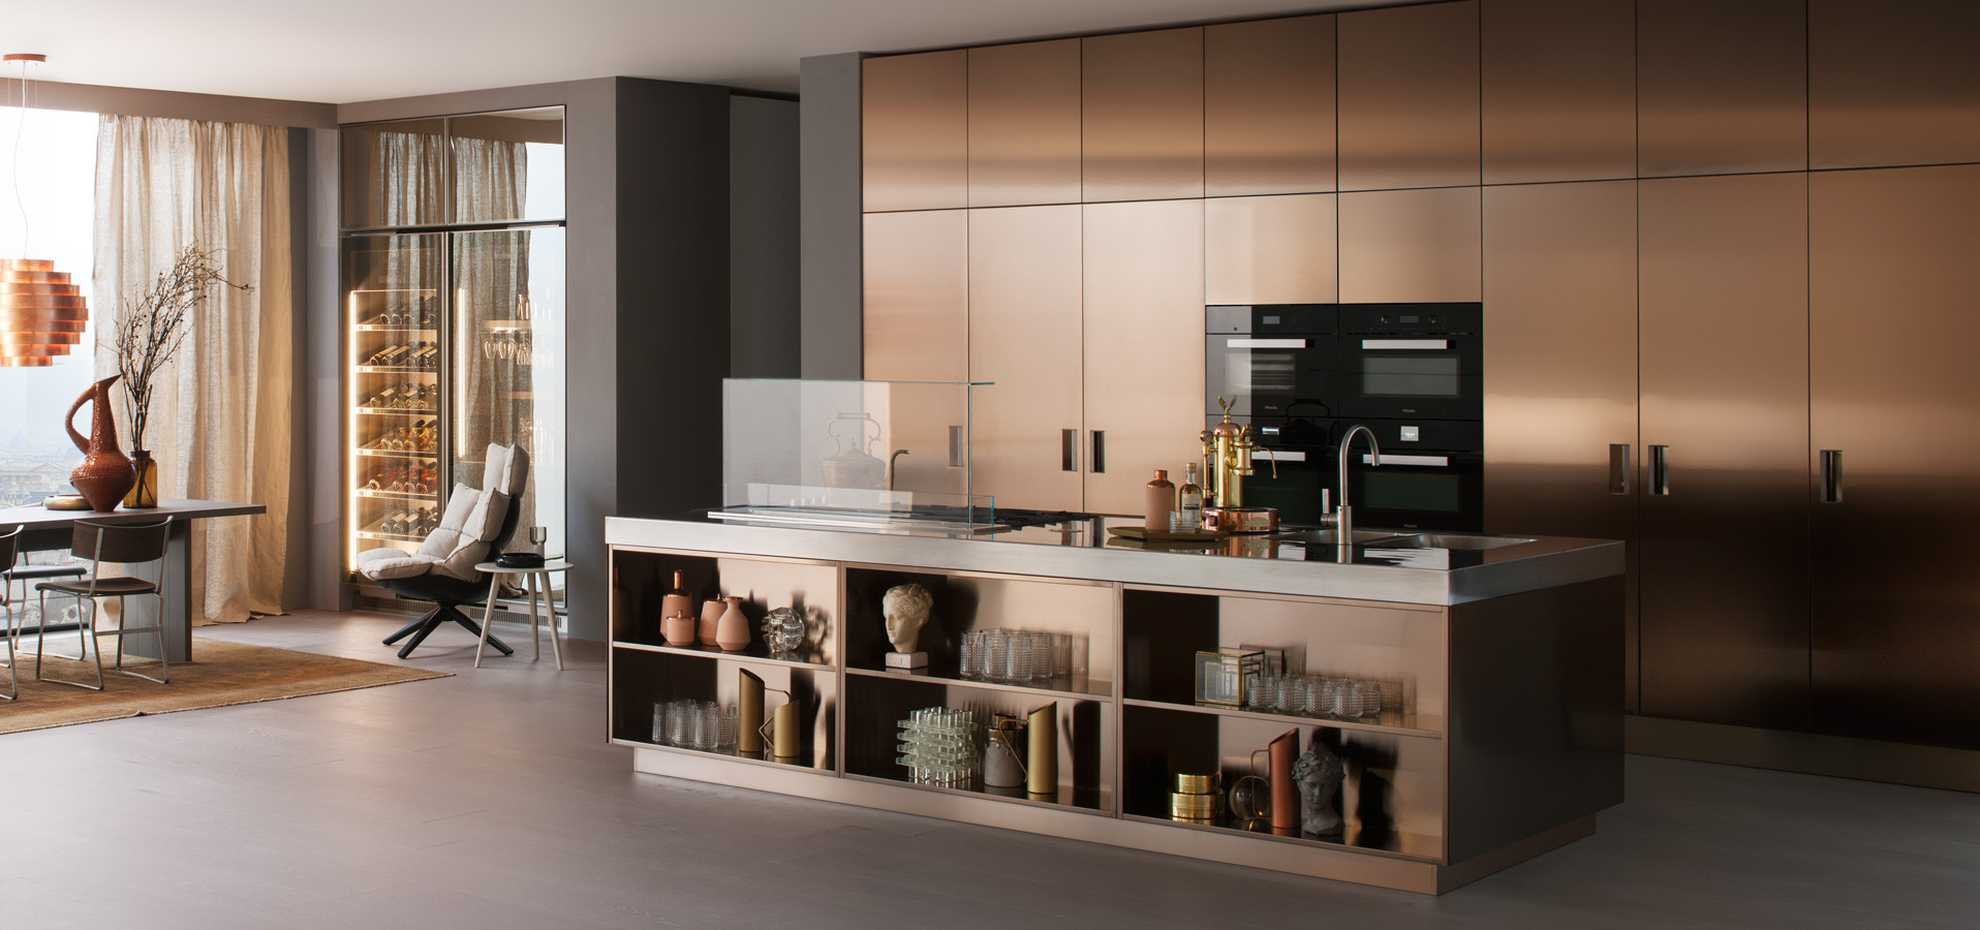 Vina Epicure by Arclinea product image 3